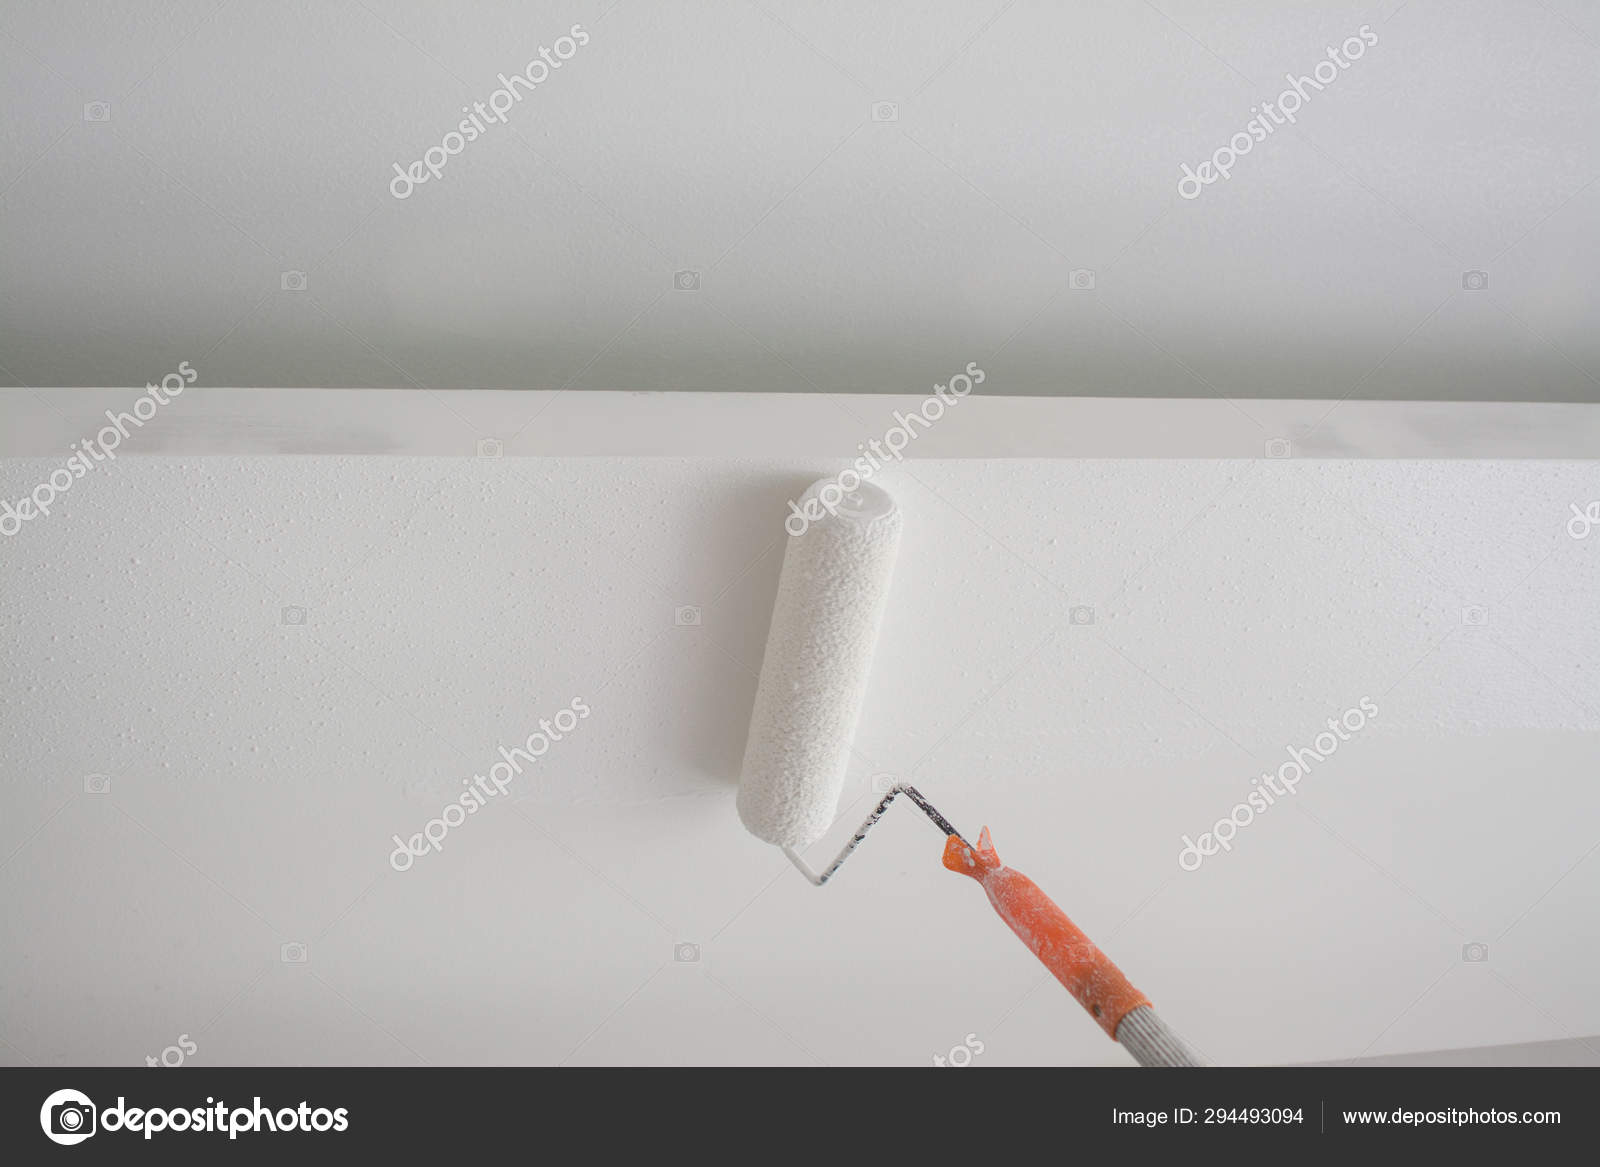 Painting A White Gypsum Plaster Ceiling With Paint Roller Stock Photo Image By C Yaryhee 294493094